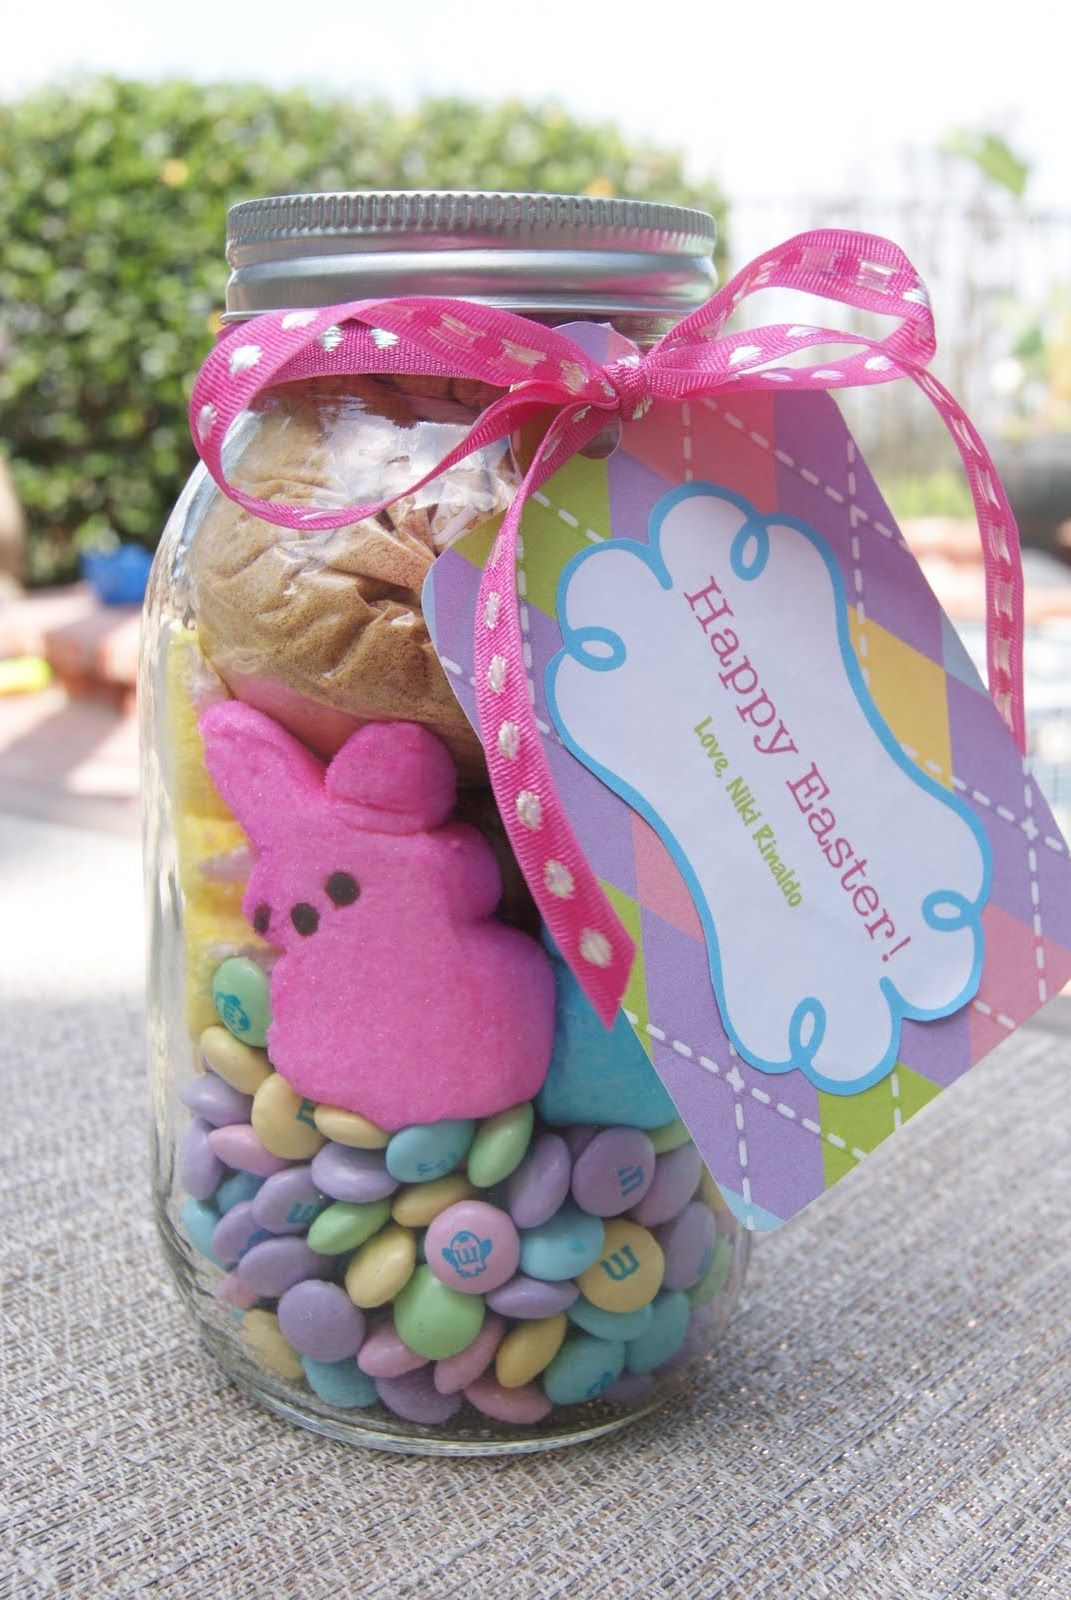 Mothers day printables easter easter holidays and professor bunny brownies in a jar bunny smores seems simple festivea perfect easter treat for teachers neighbors spring chickens negle Images